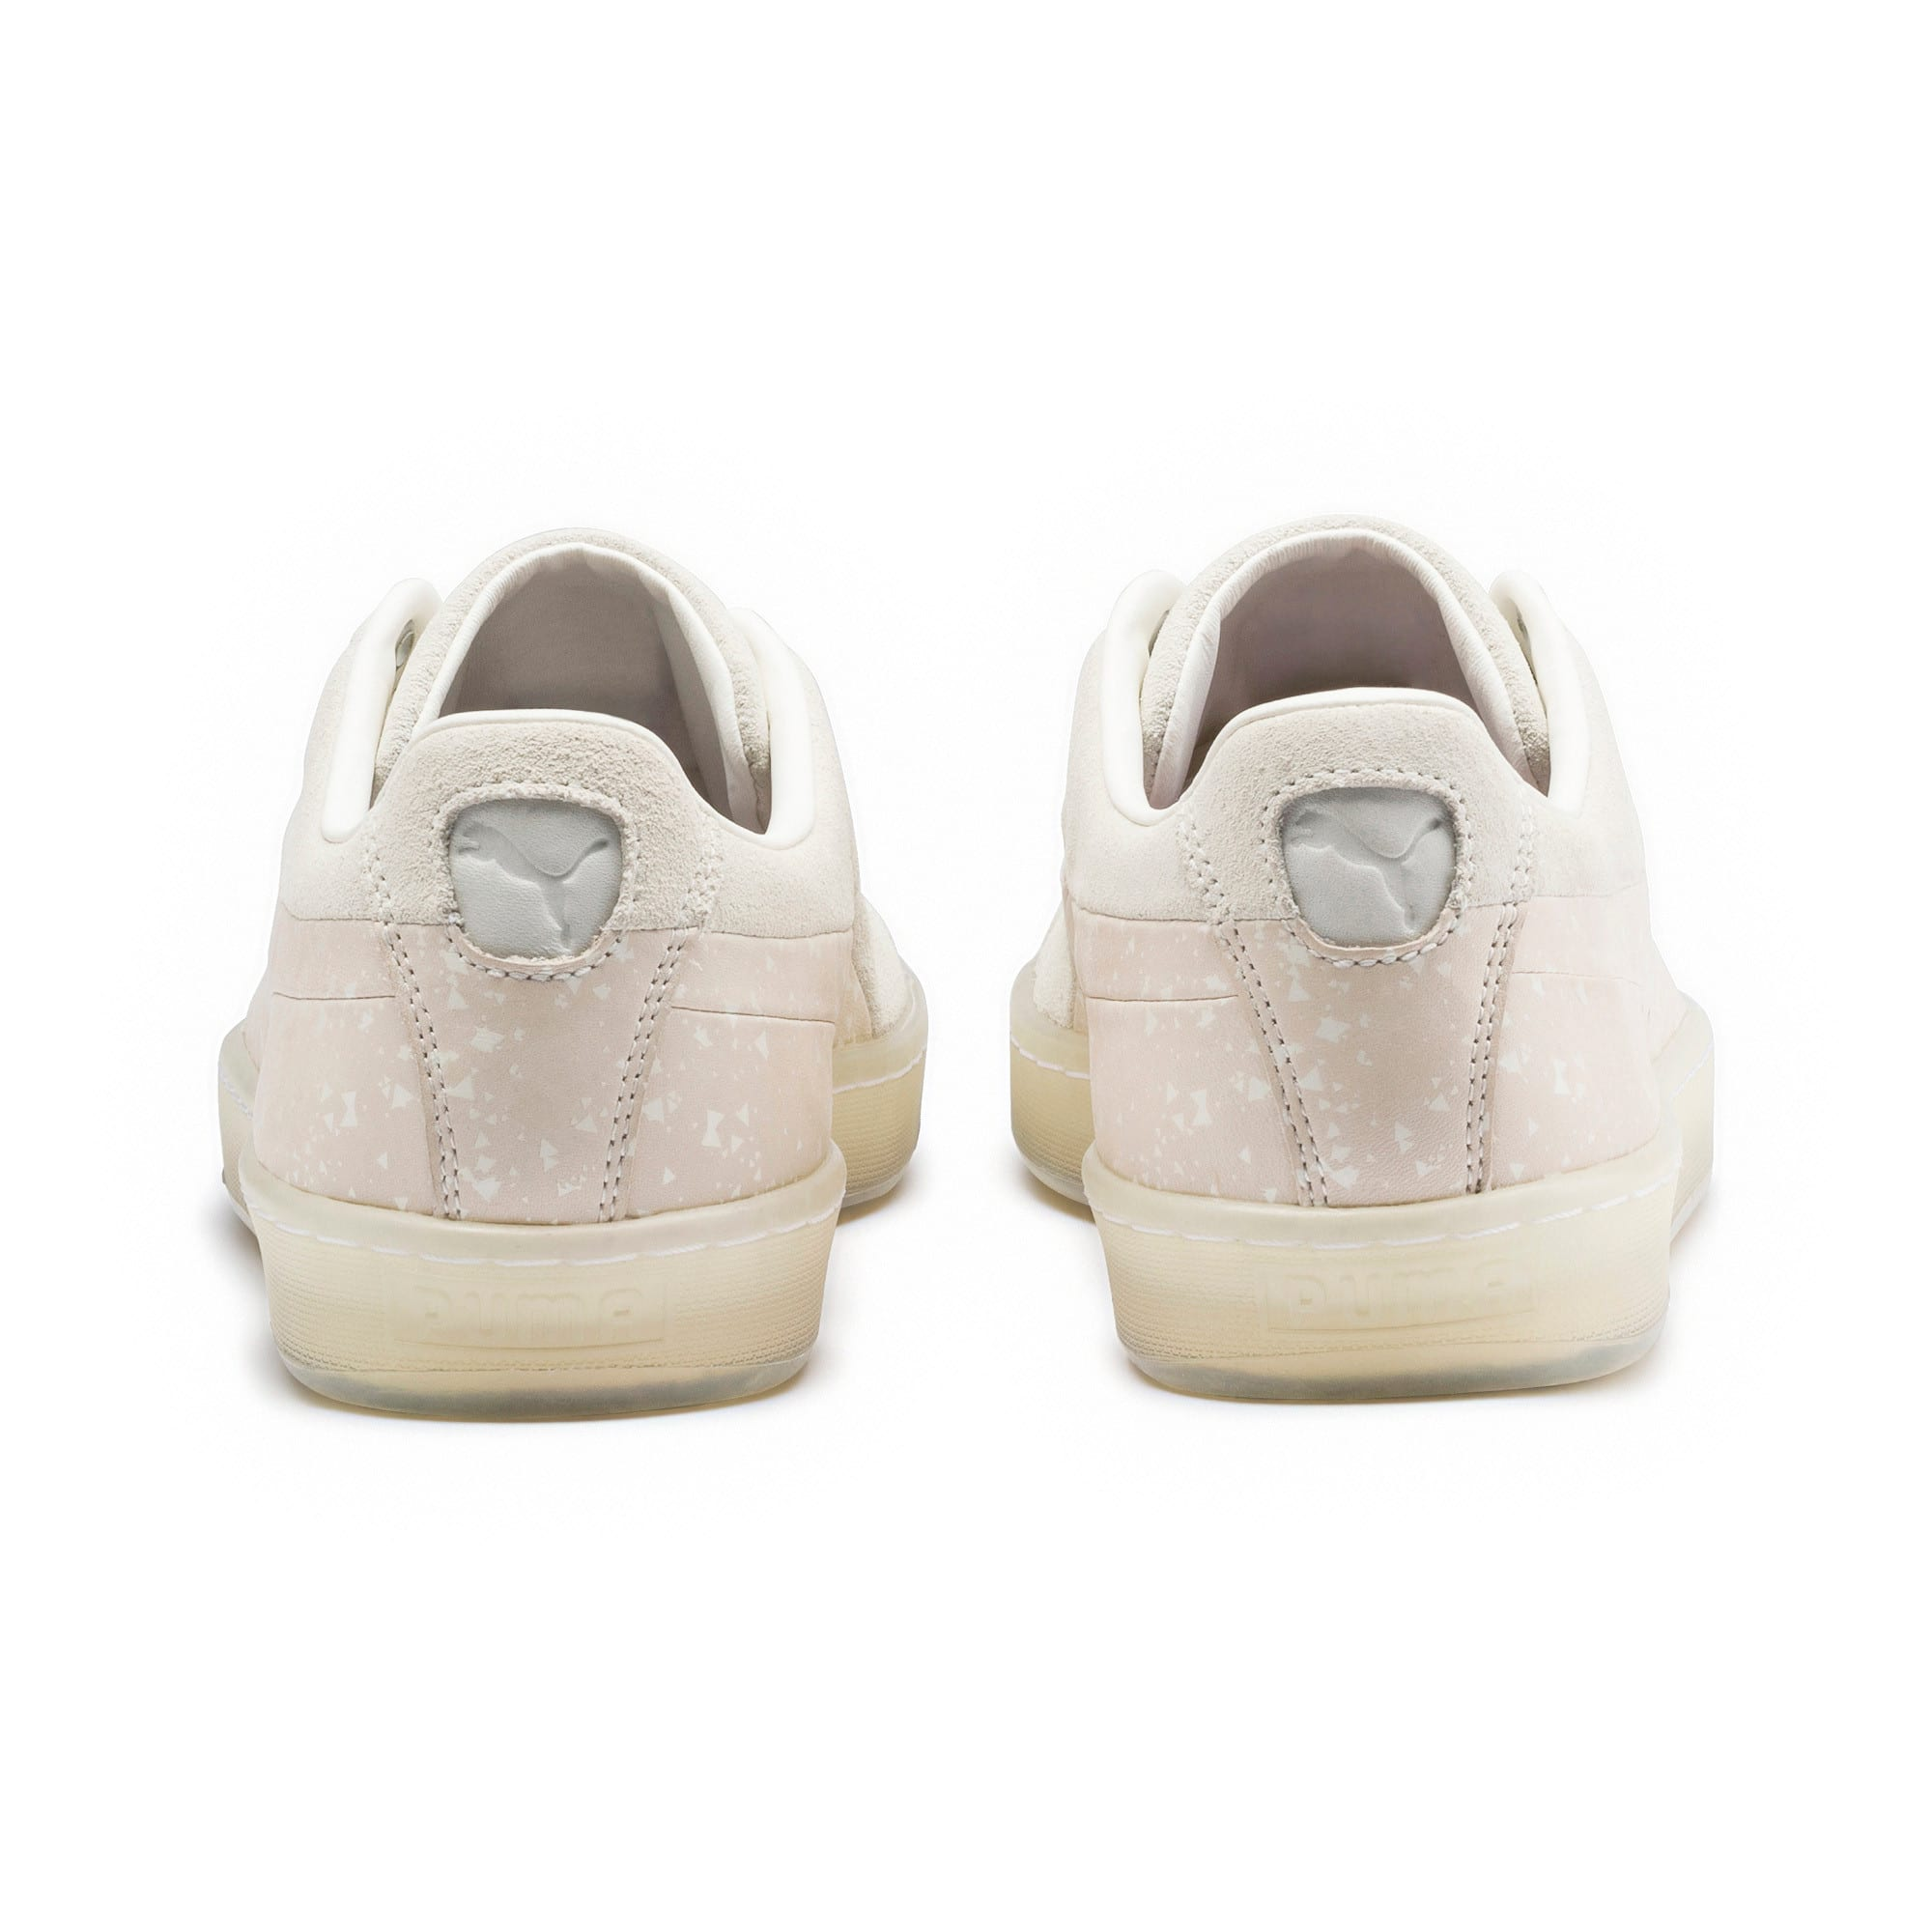 Thumbnail 4 of PUMA x NATUREL Suede Sneakers, Whisper White-Almond, medium